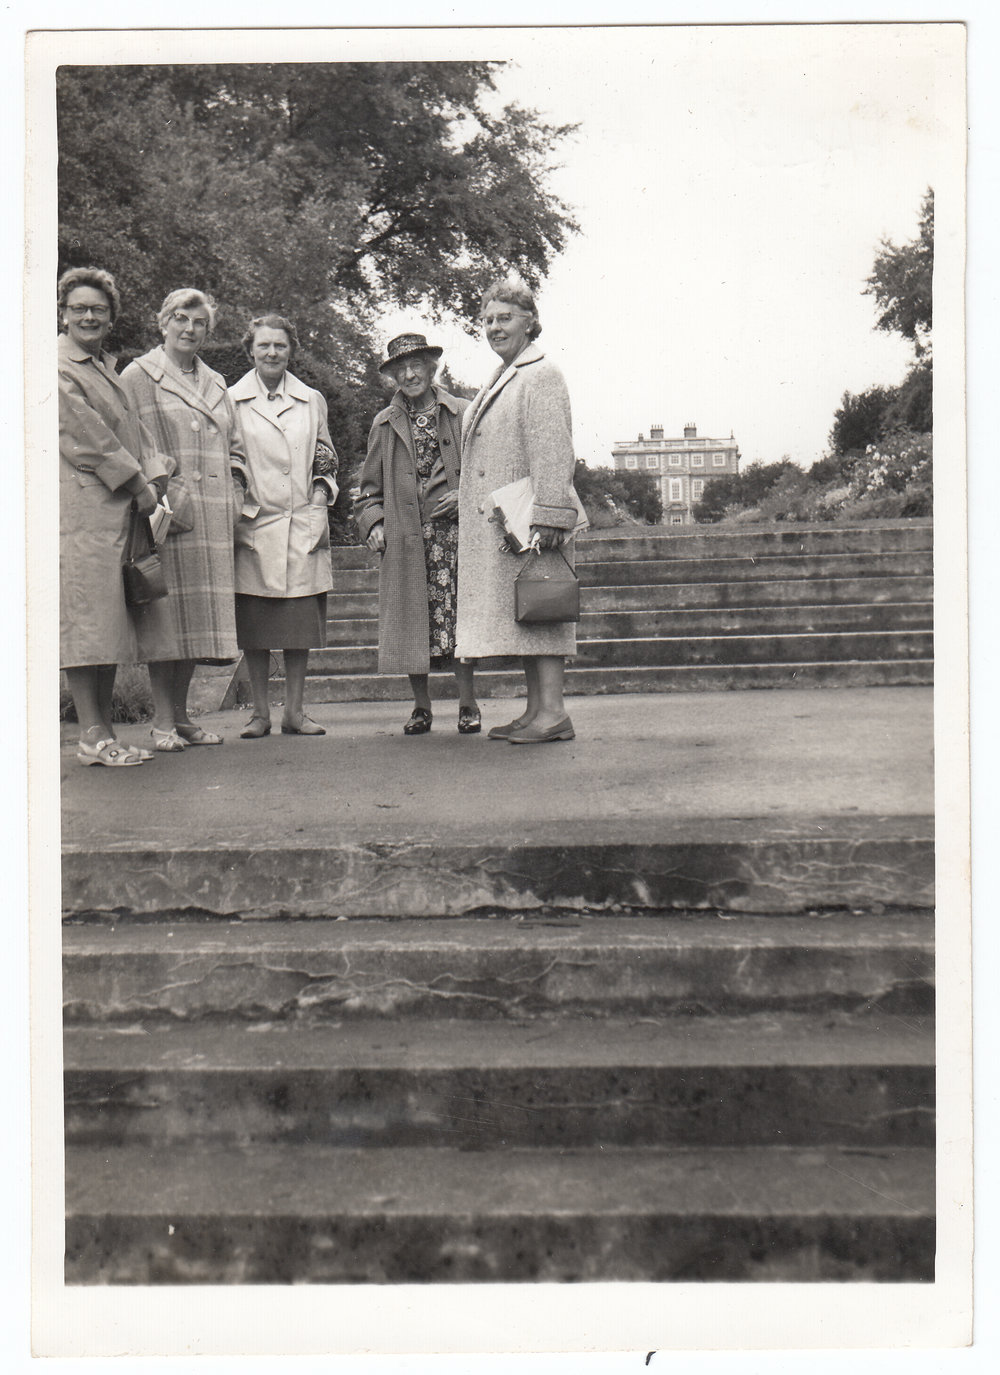 MED - Hazel, Alice, Gladys, Mother, MED